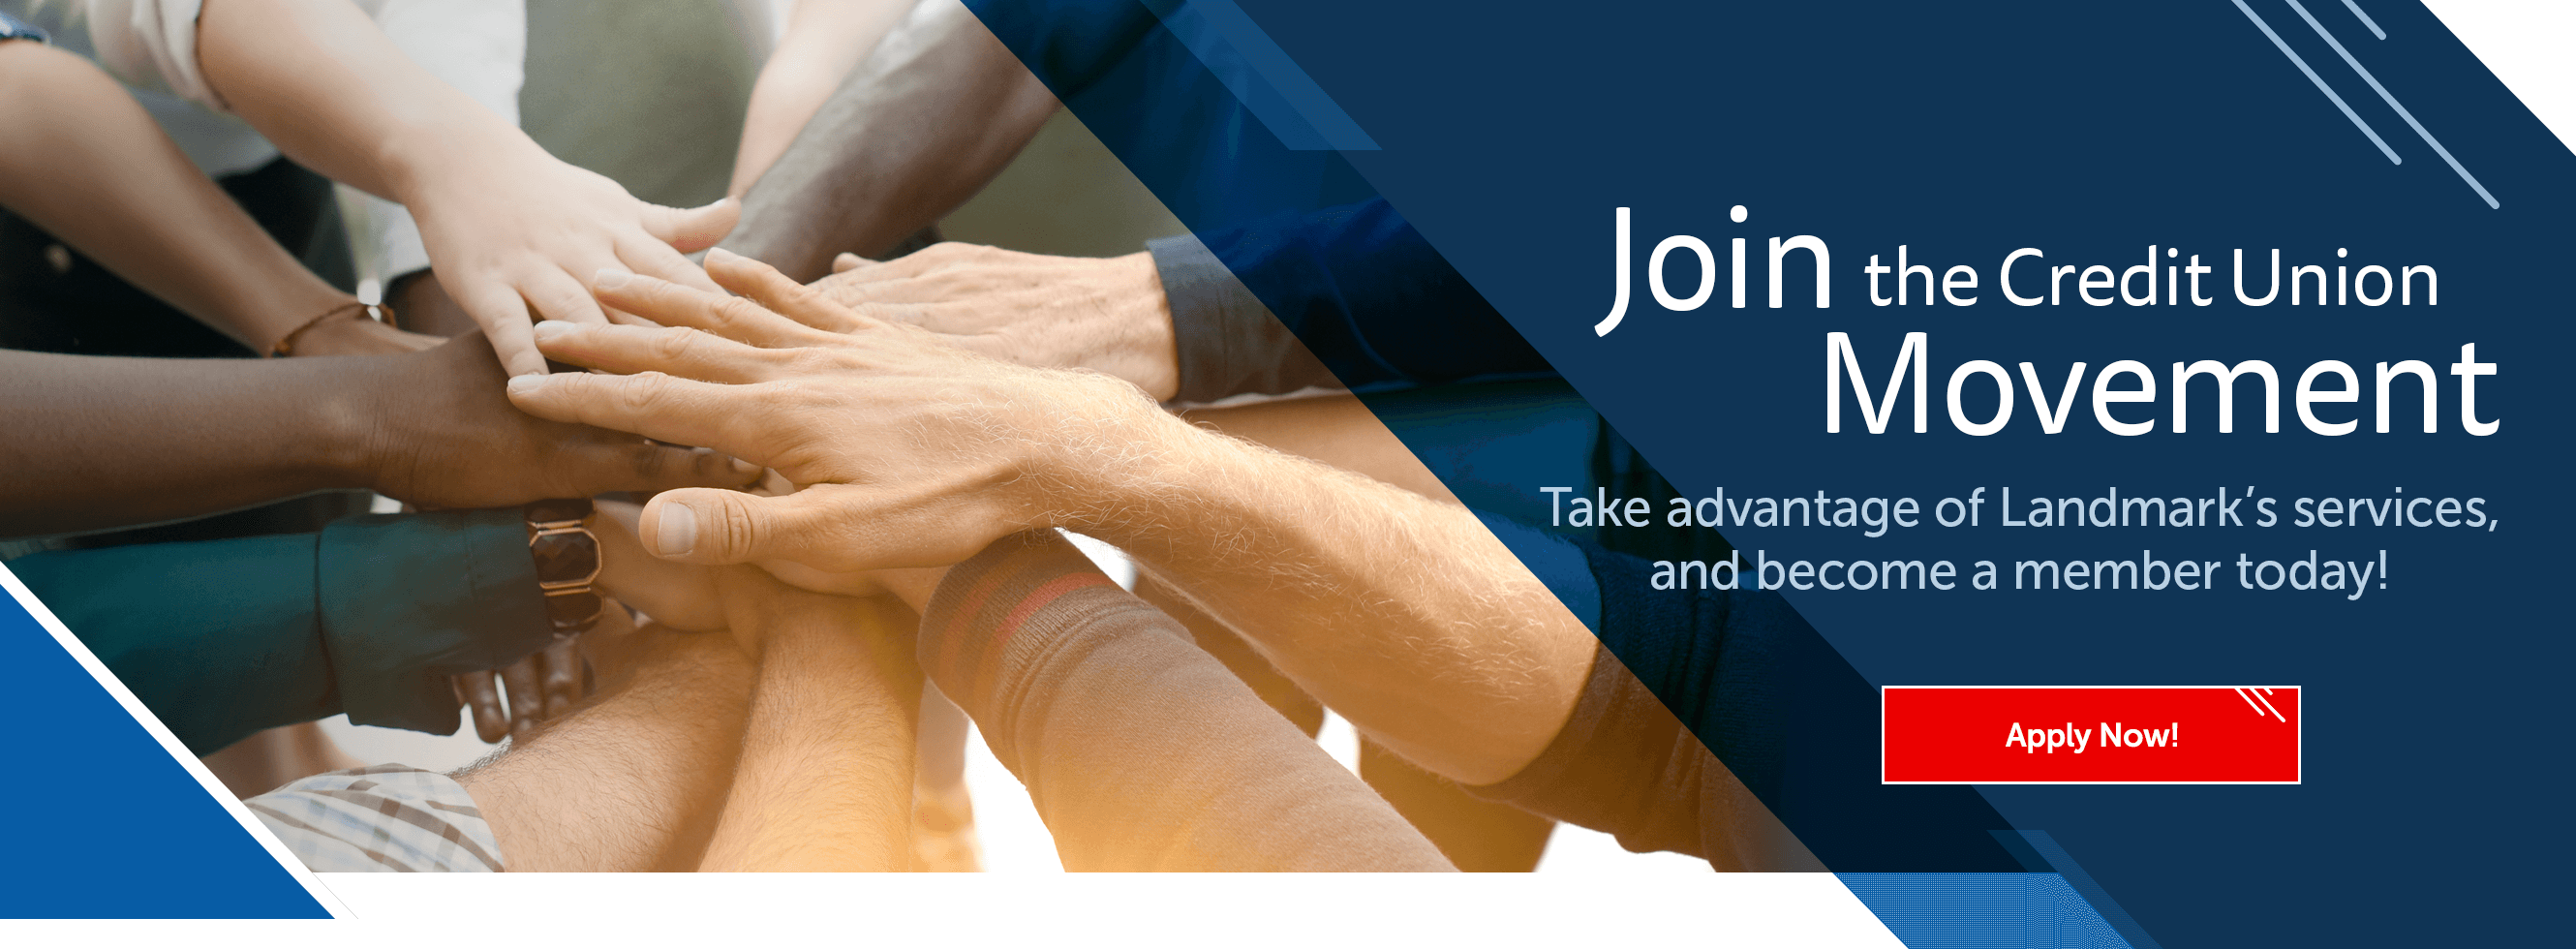 Join the Credit Union Movement. Take advantage of Landmark's services and become a member today! Apply Now!